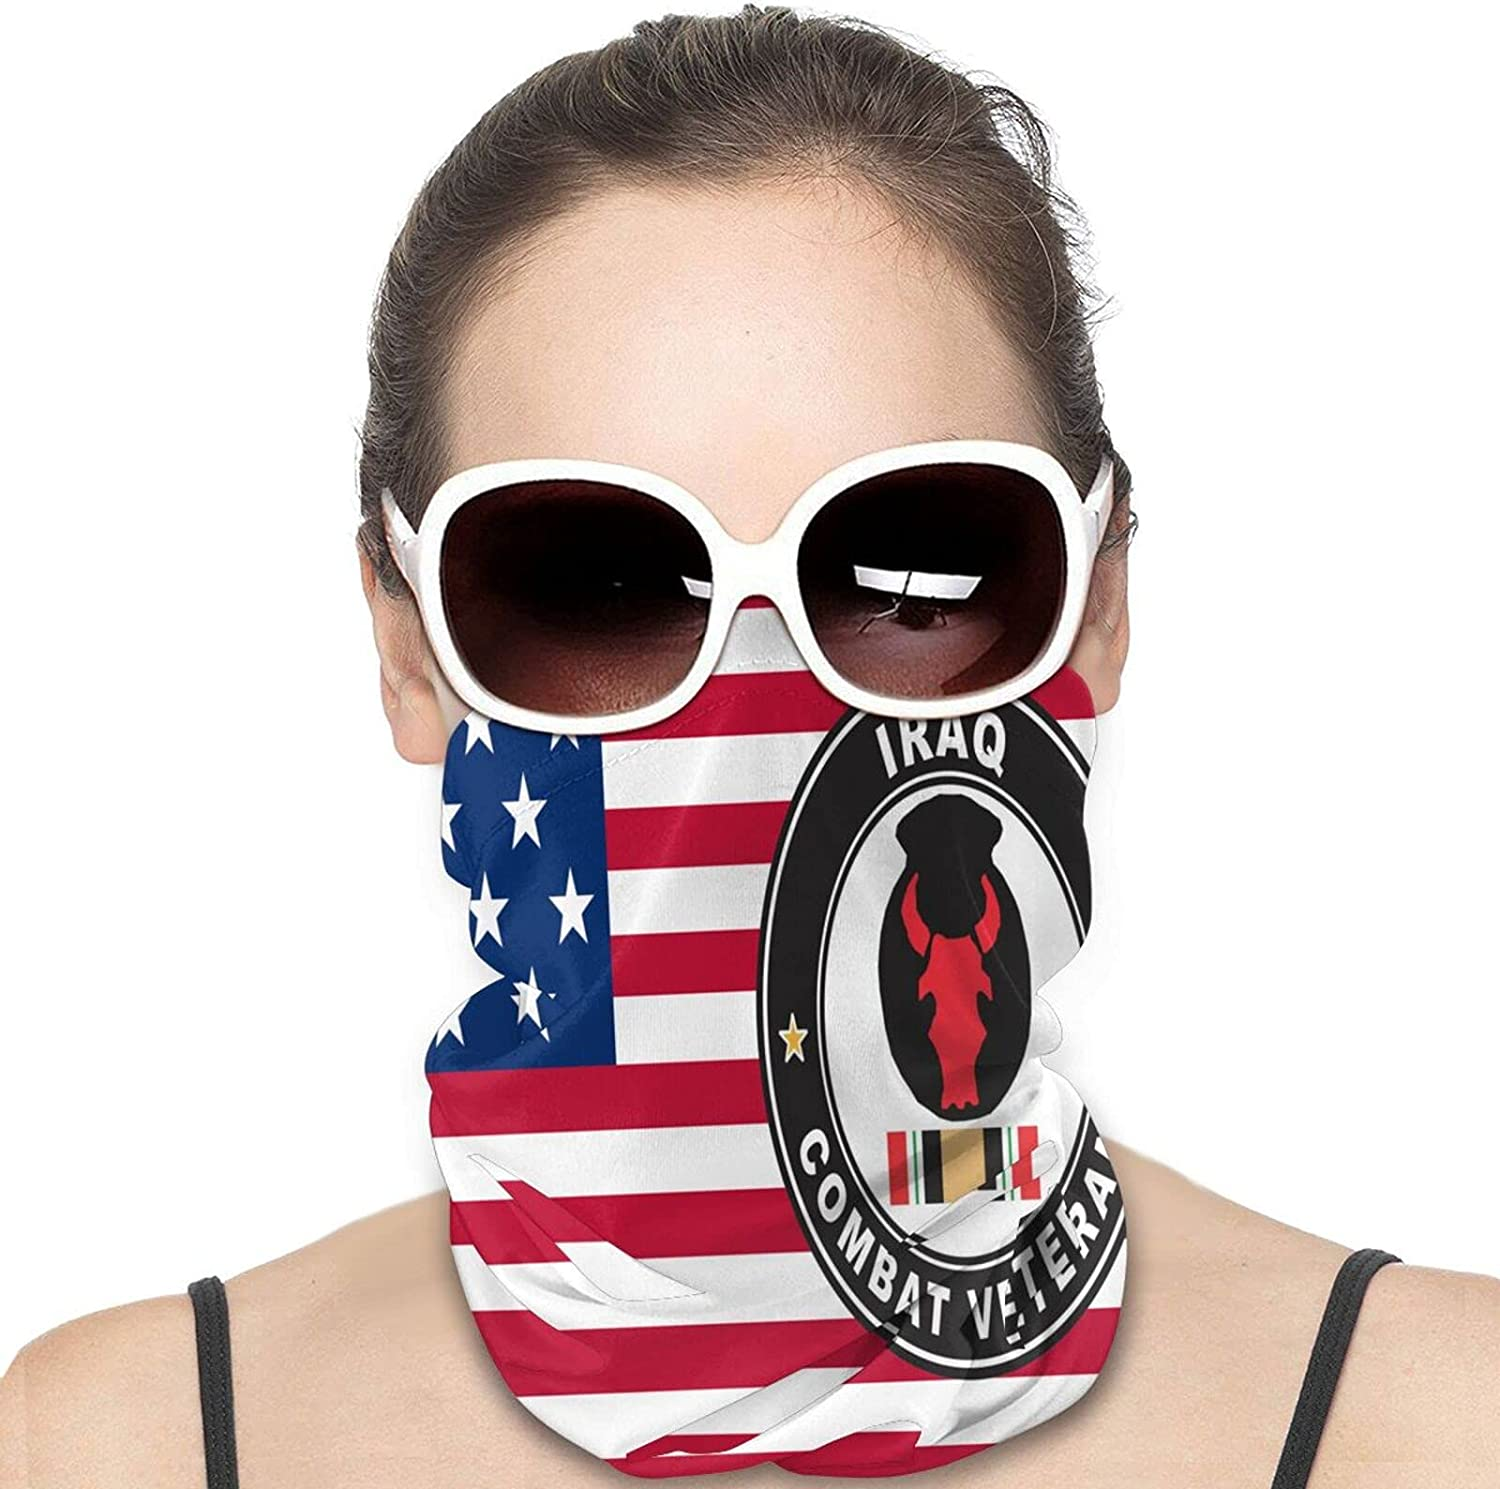 34th Infantry Division Iraq Combat Veteran Round Neck Gaiter Bandnas Face Cover Uv Protection Prevent bask in Ice Scarf Headbands Perfect for Motorcycle Cycling Running Festival Raves Outdoors